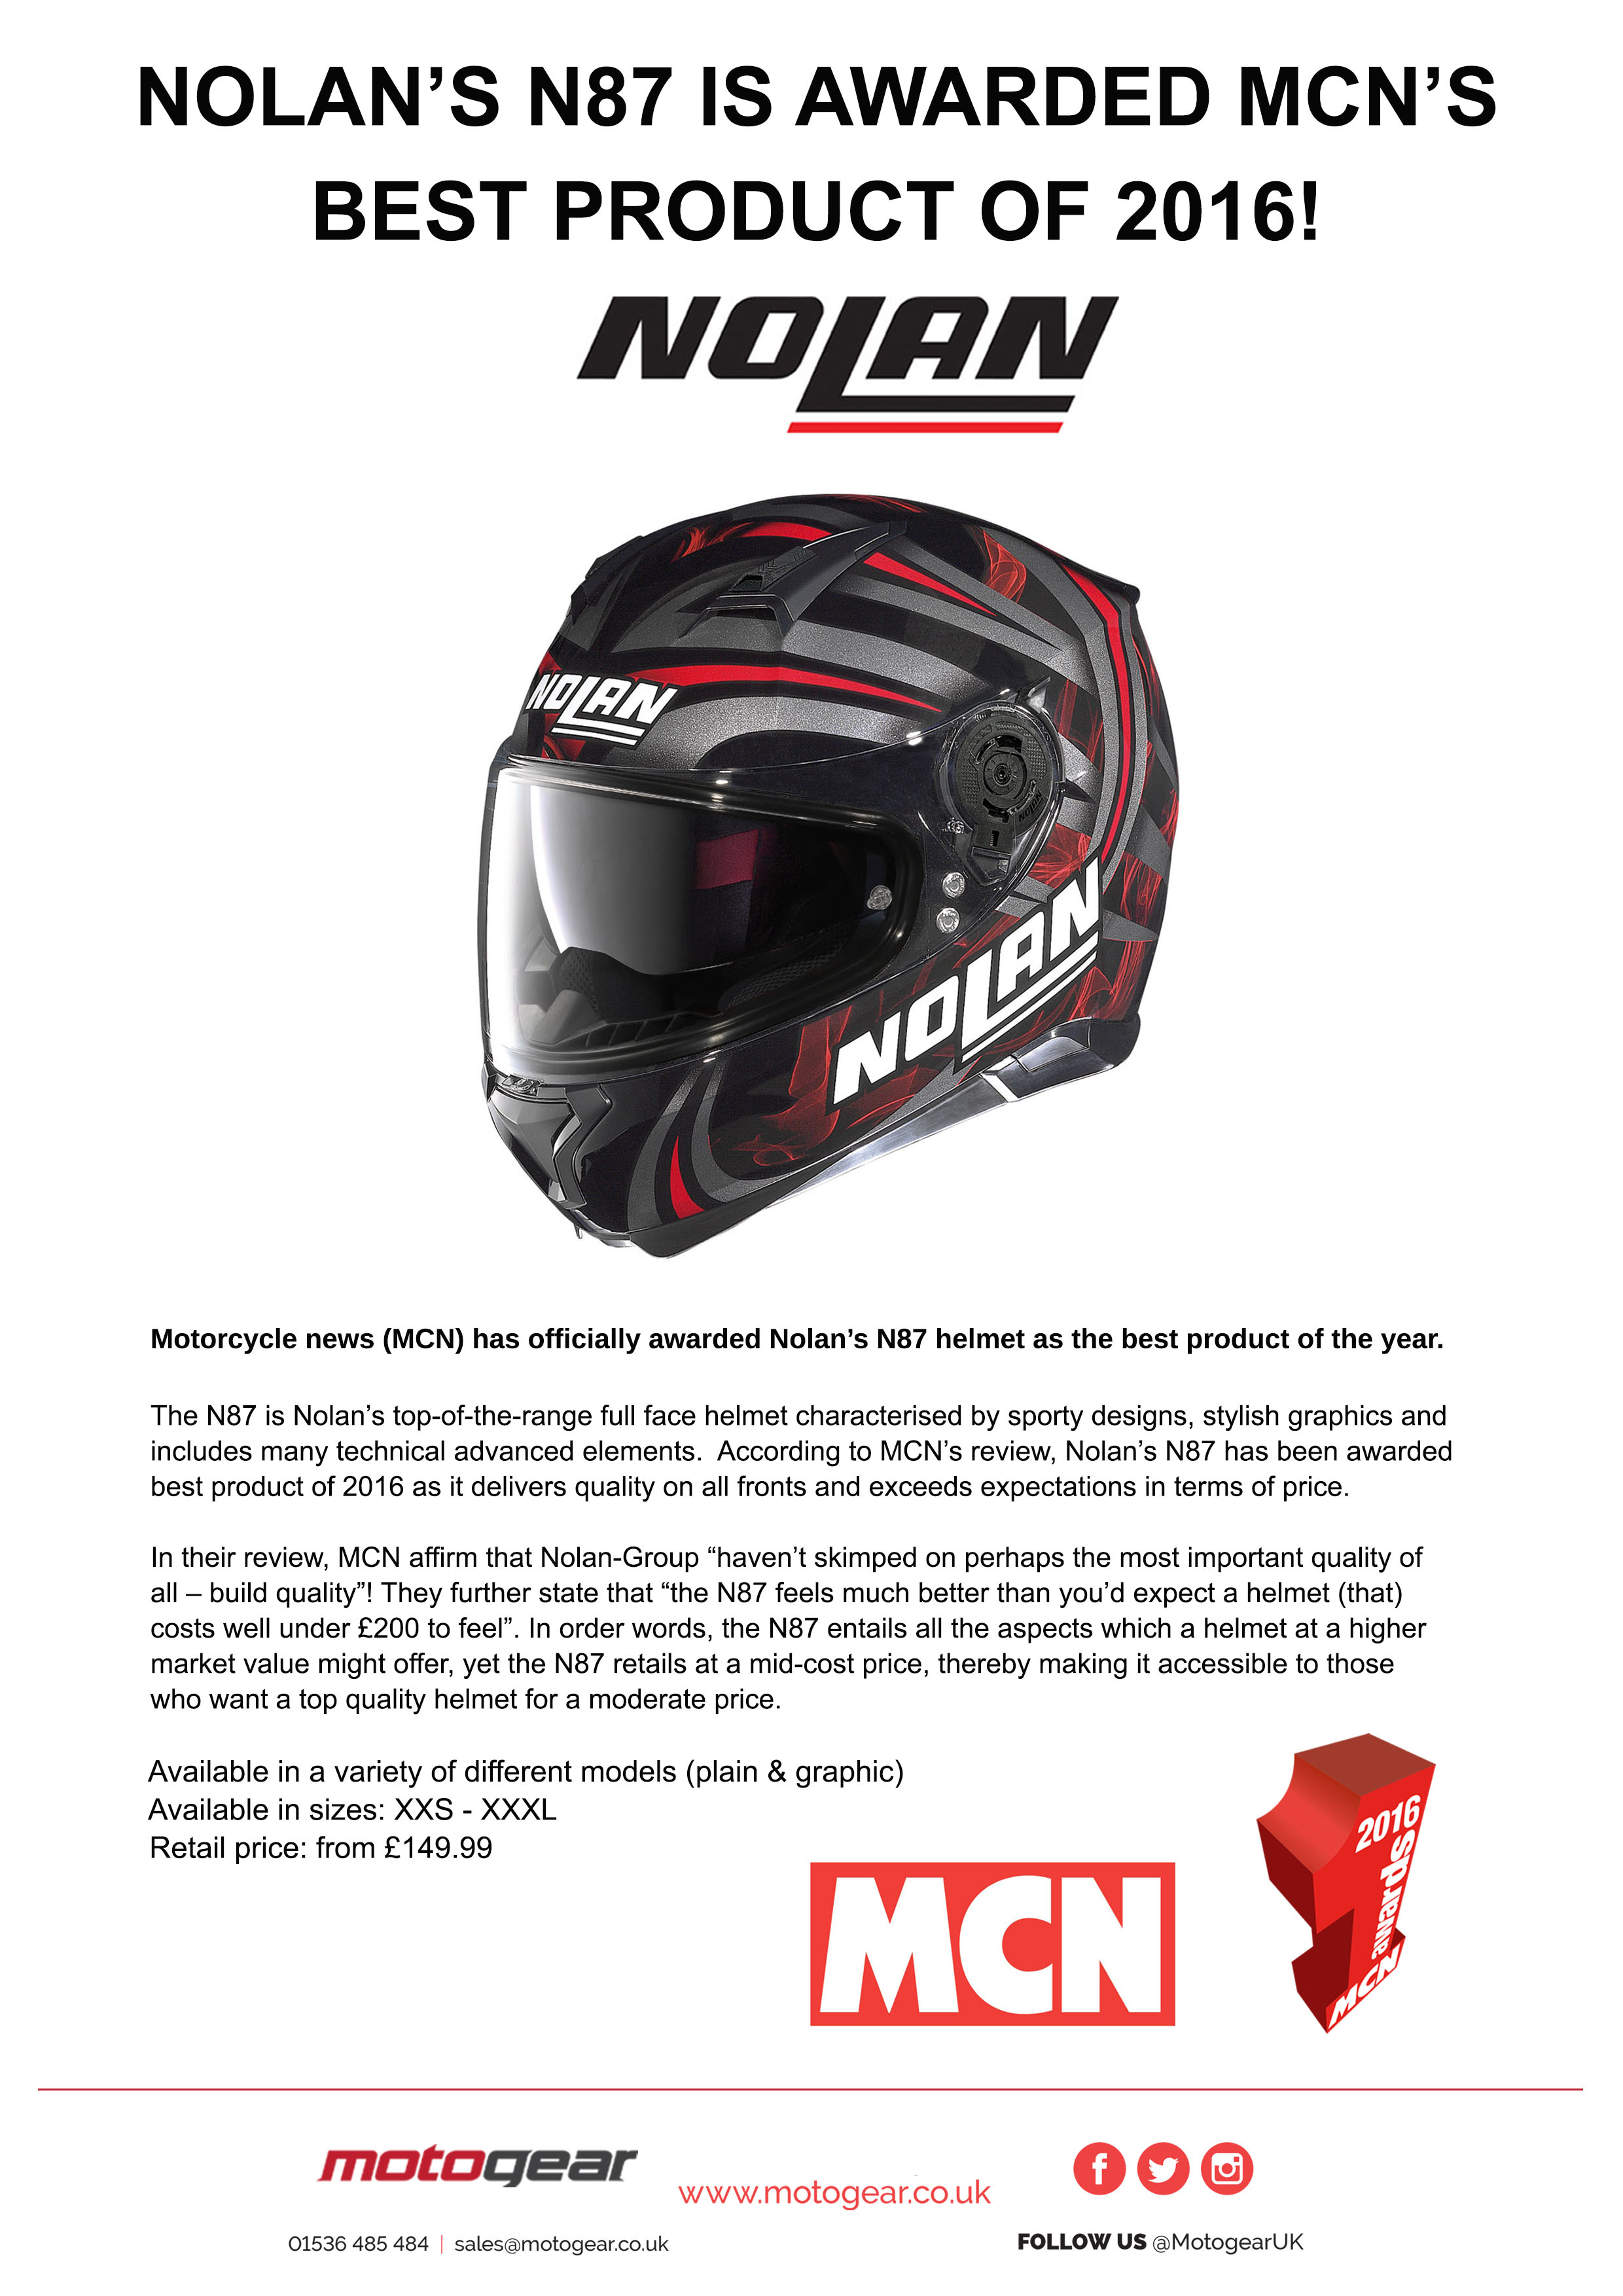 mcn-press-release-corporate-copy